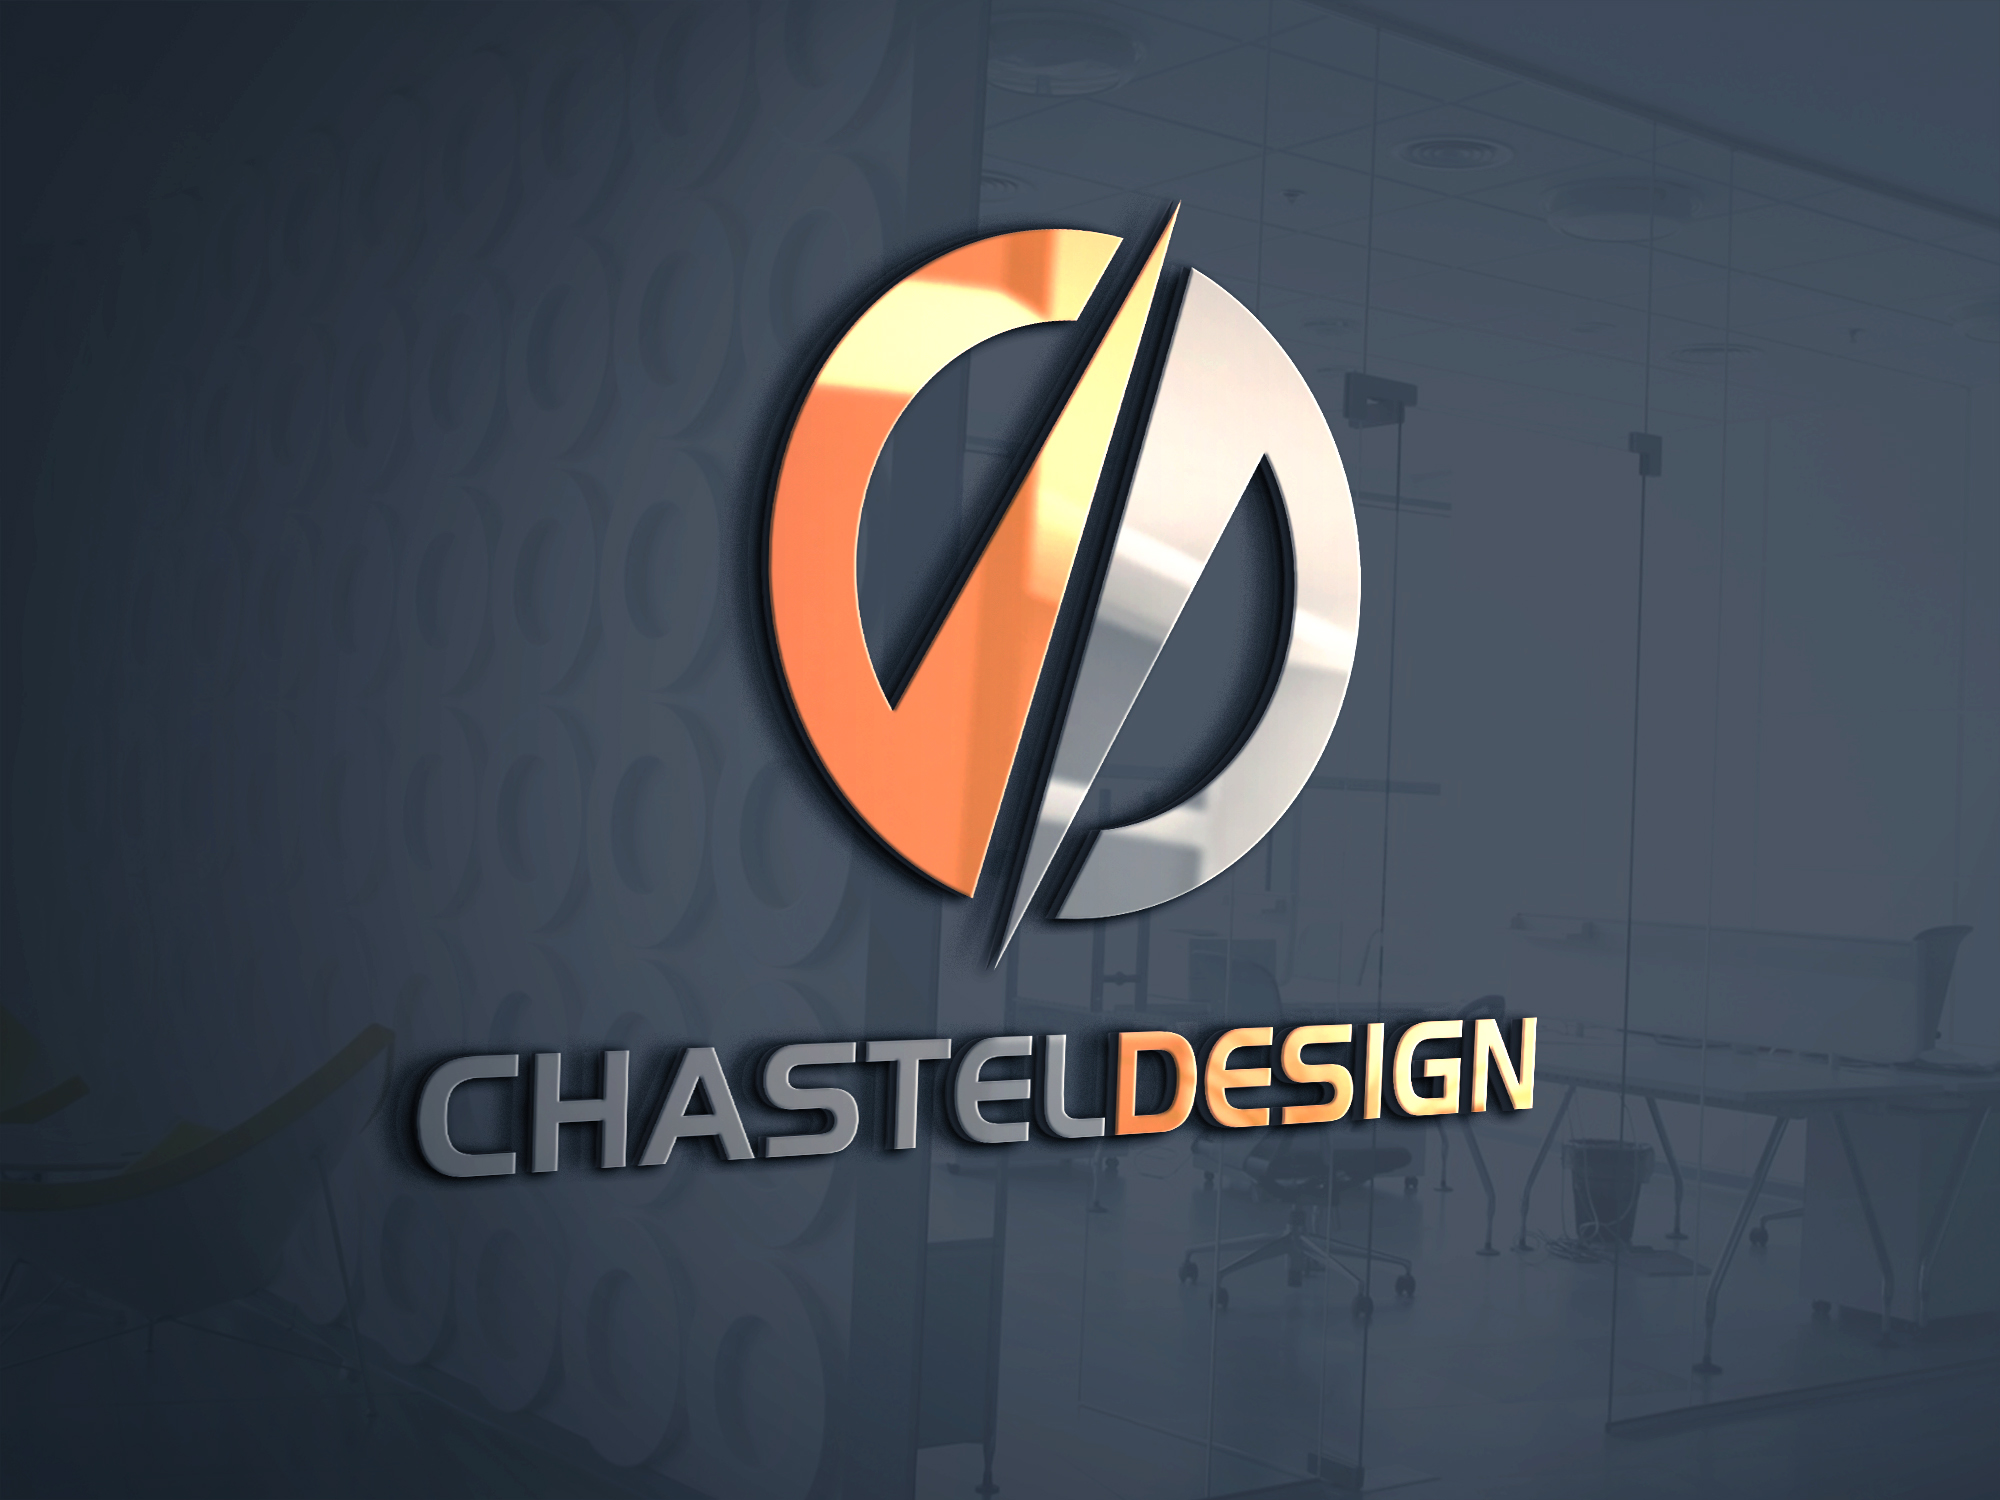 Design high-quality modern unique  logo design for any brand